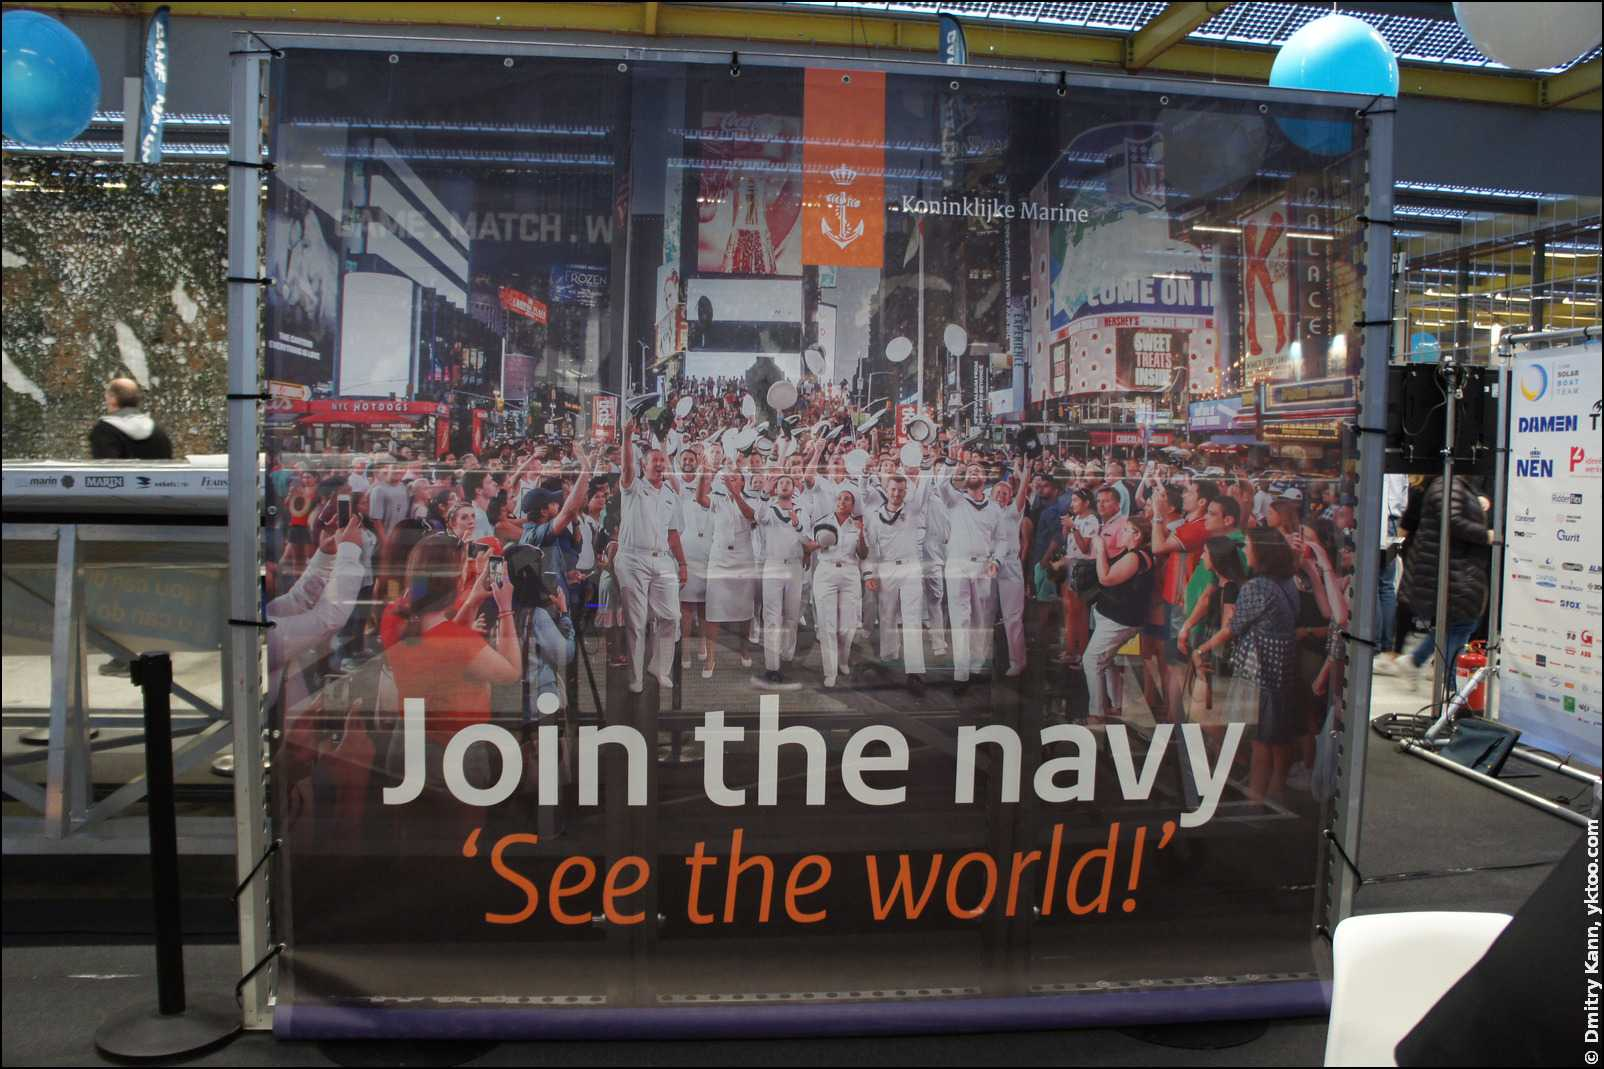 «Join the navy, see the world!»